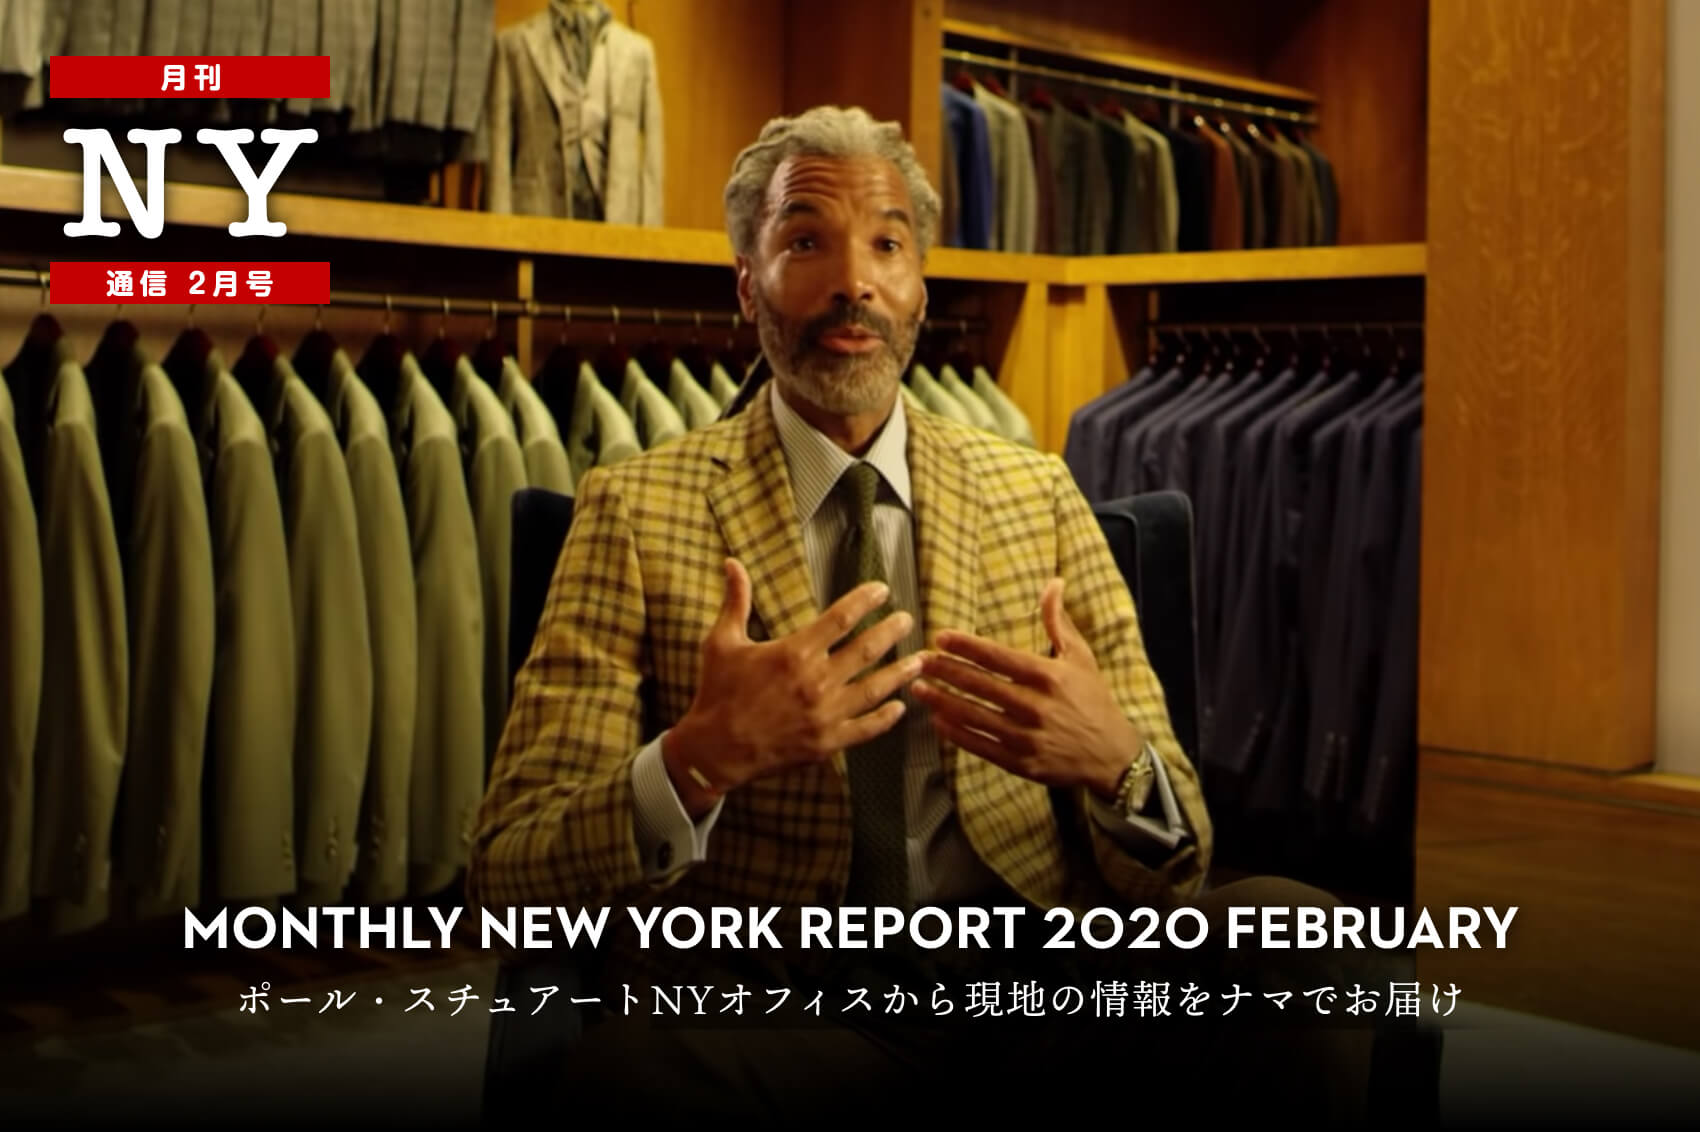 Monthly New York Report 2020 2(FEBRUARY)